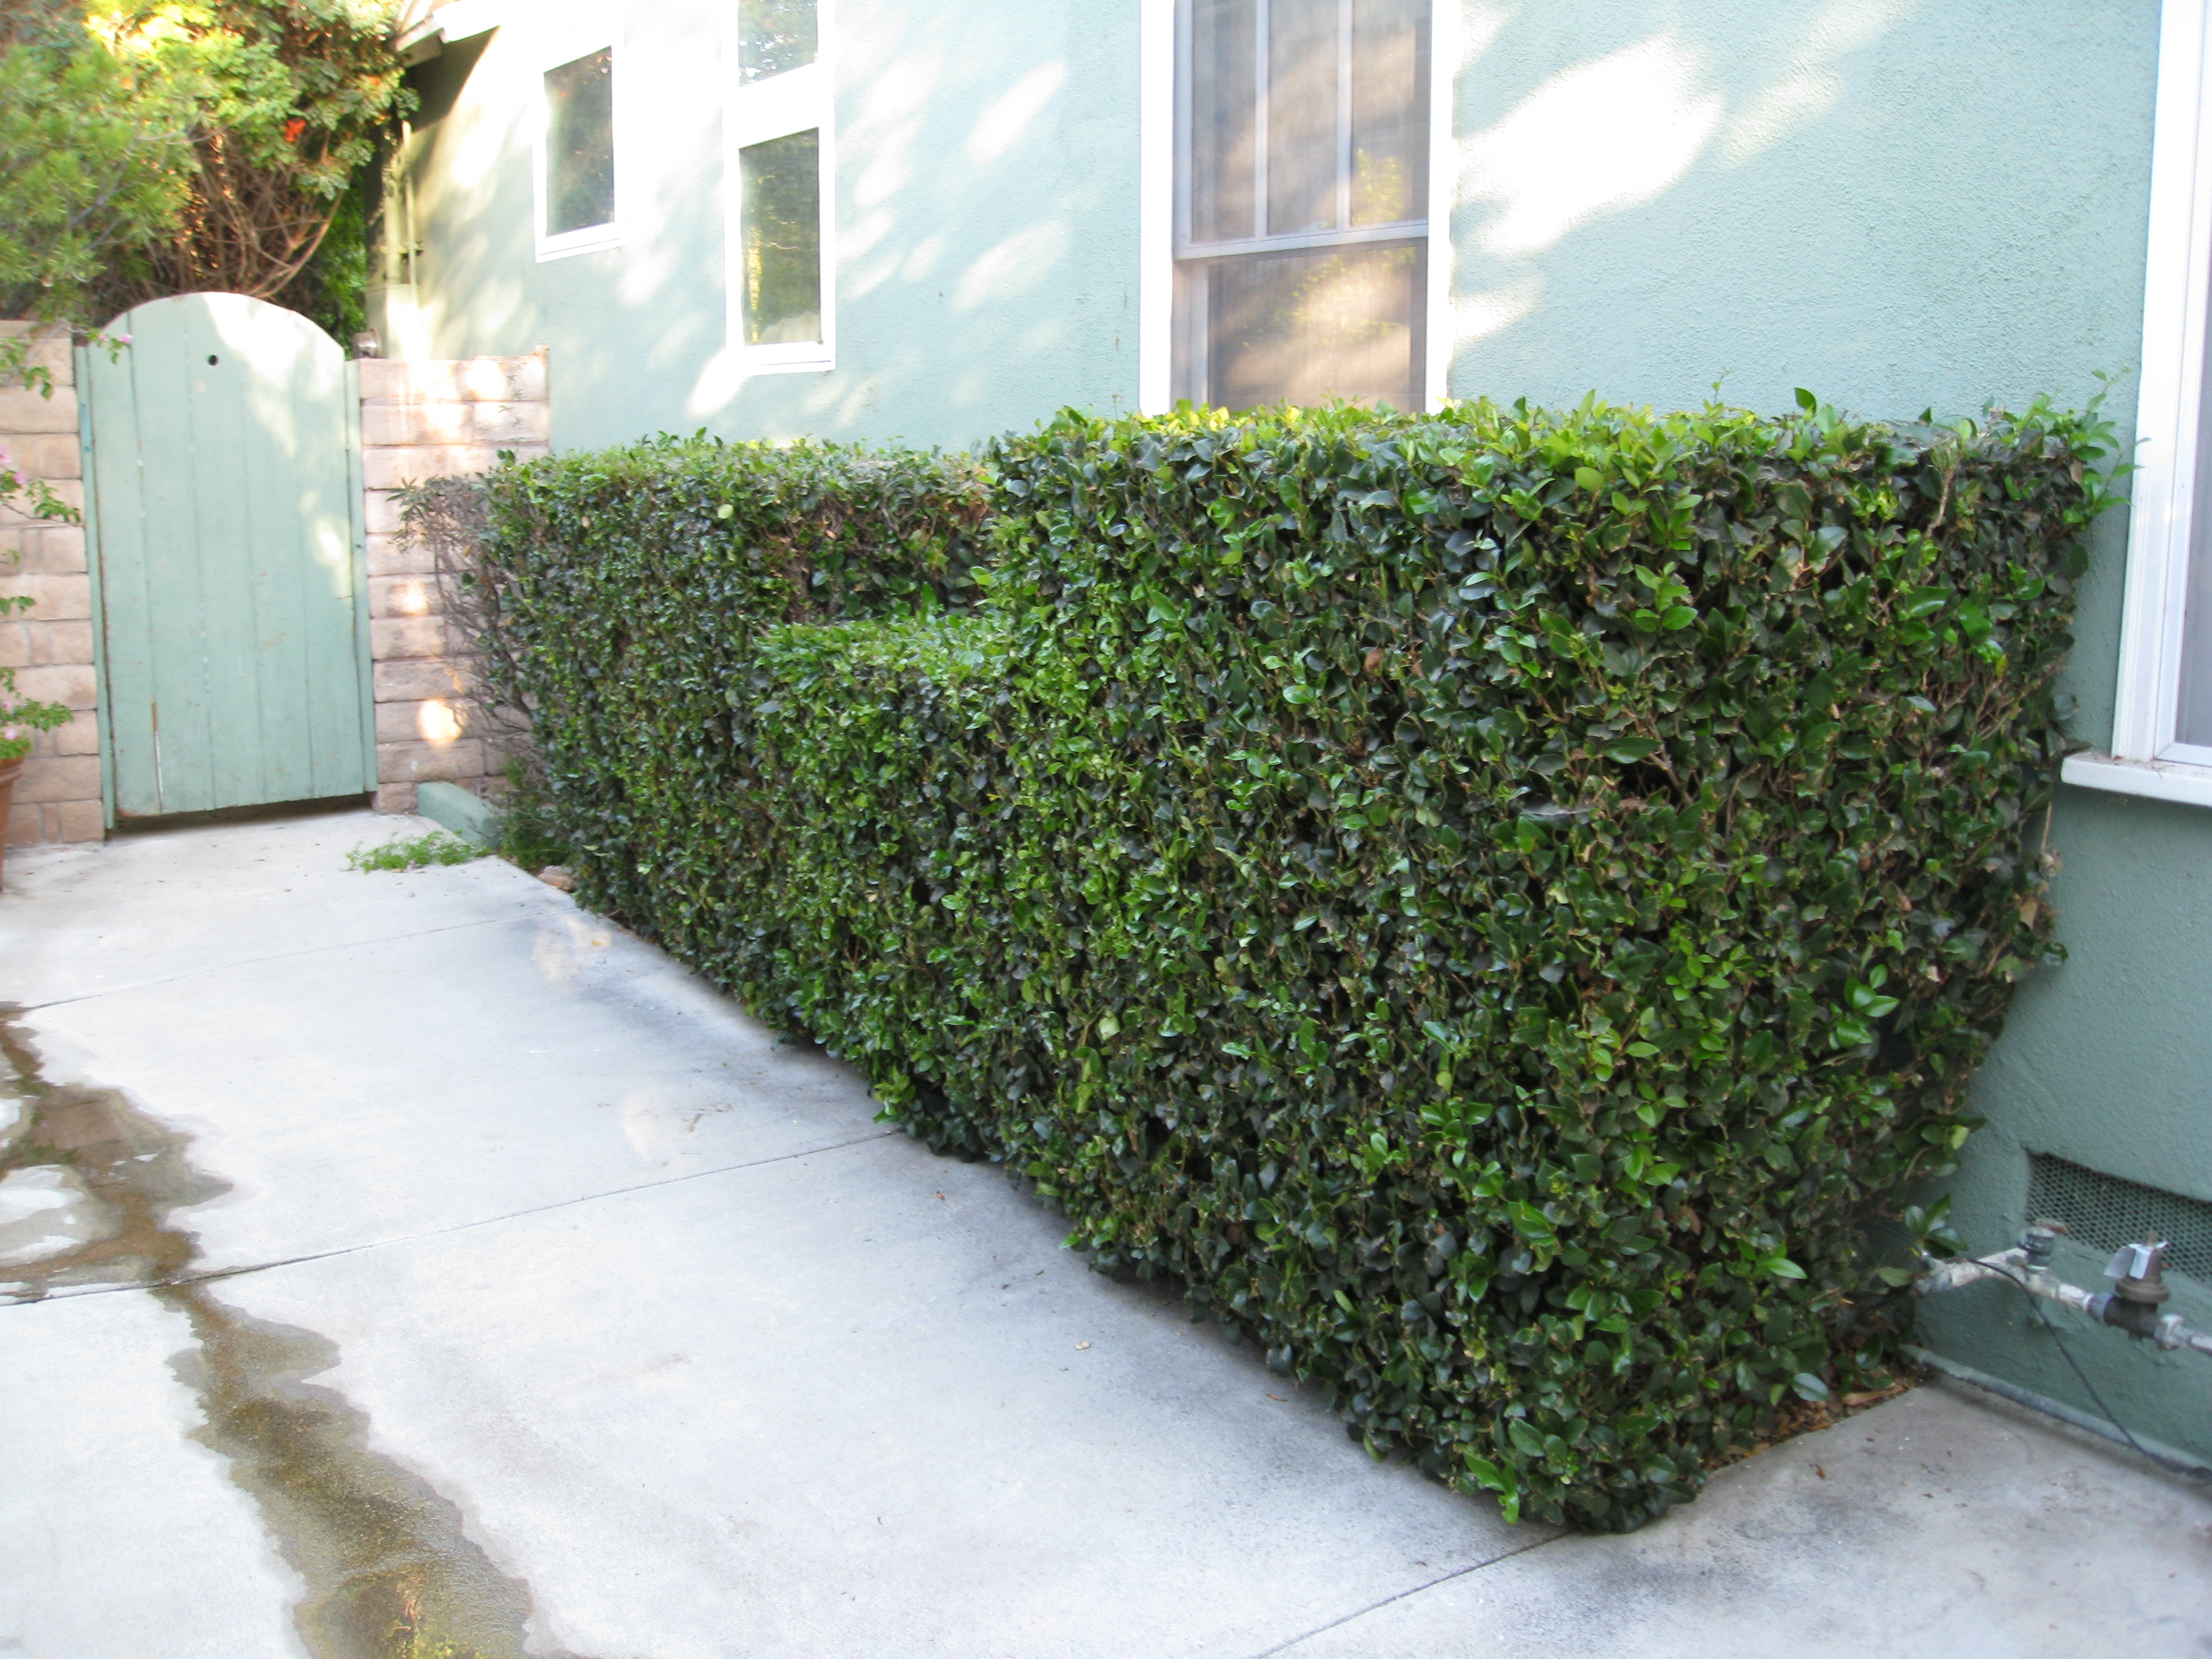 An old hedge became a useful space for growing food.